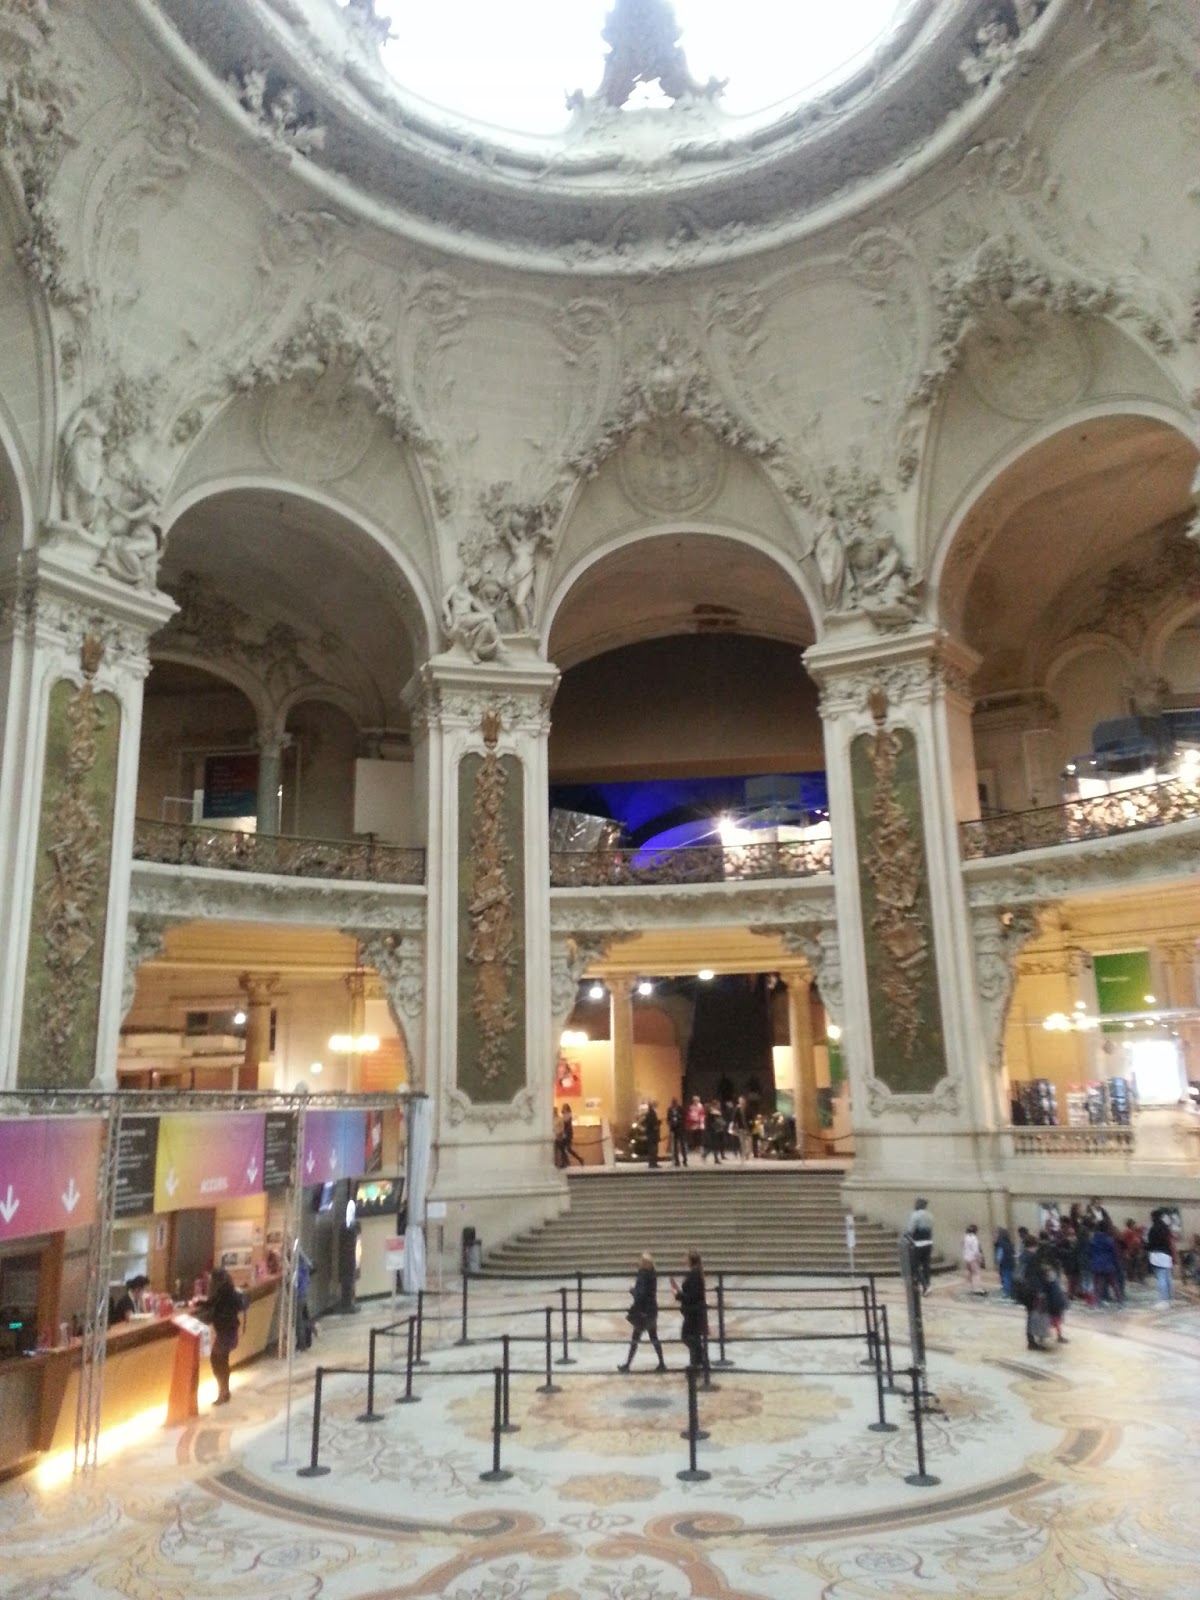 Planétarium Photo de Palais de la découverte Paris TripAdvisor